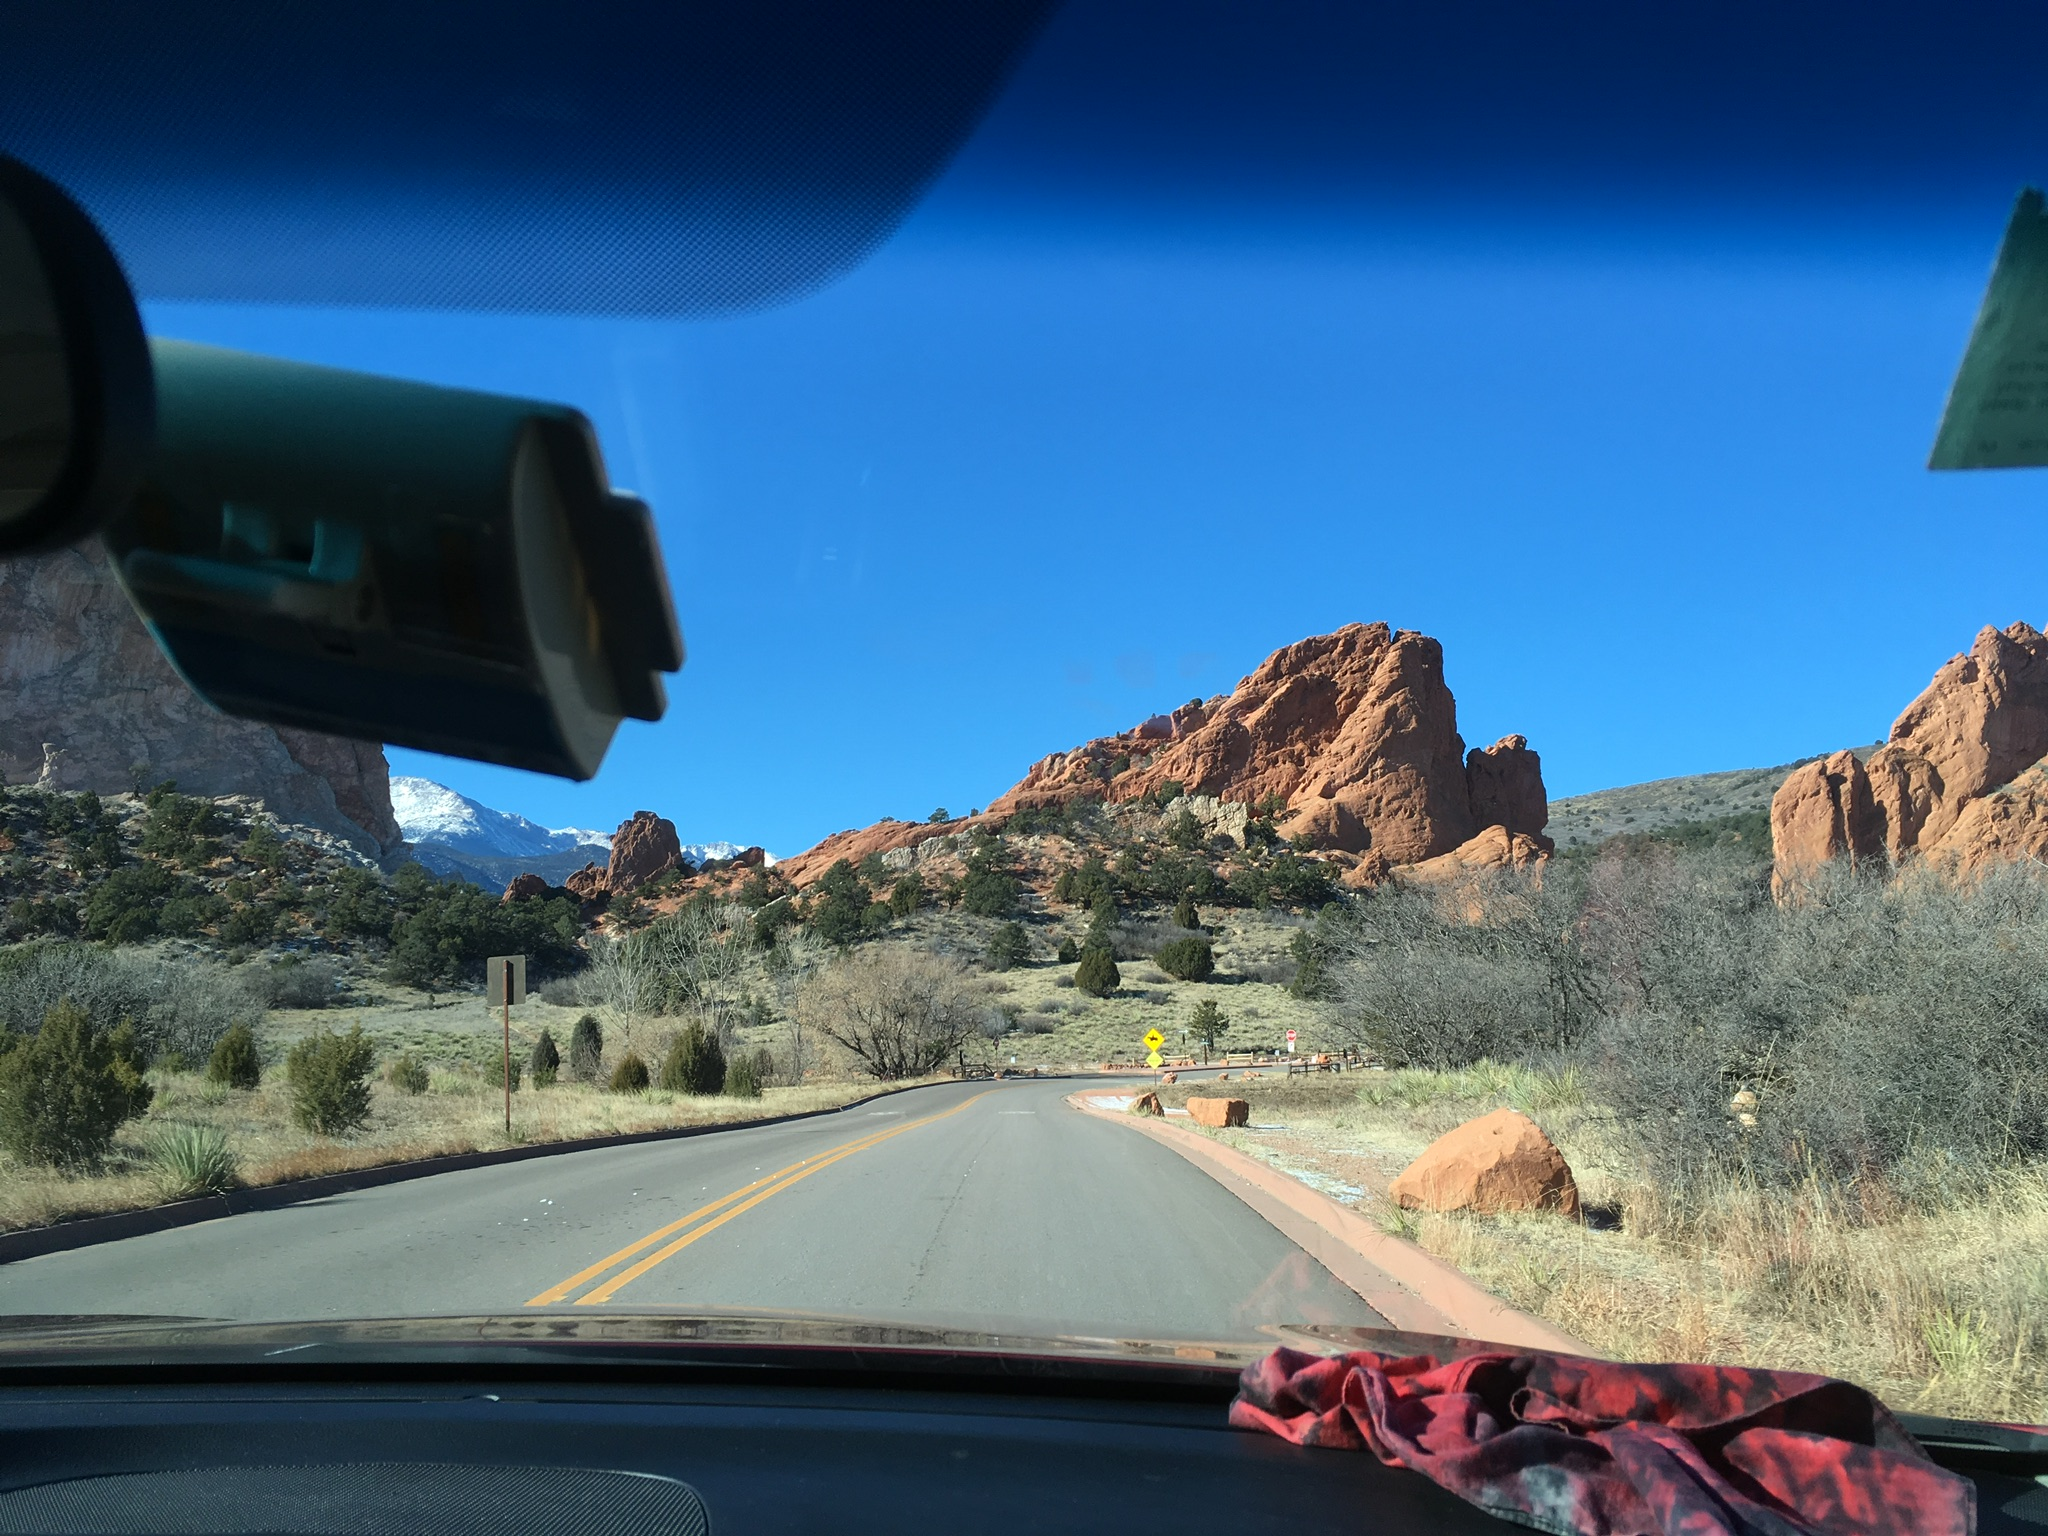 View of rocks inside the car